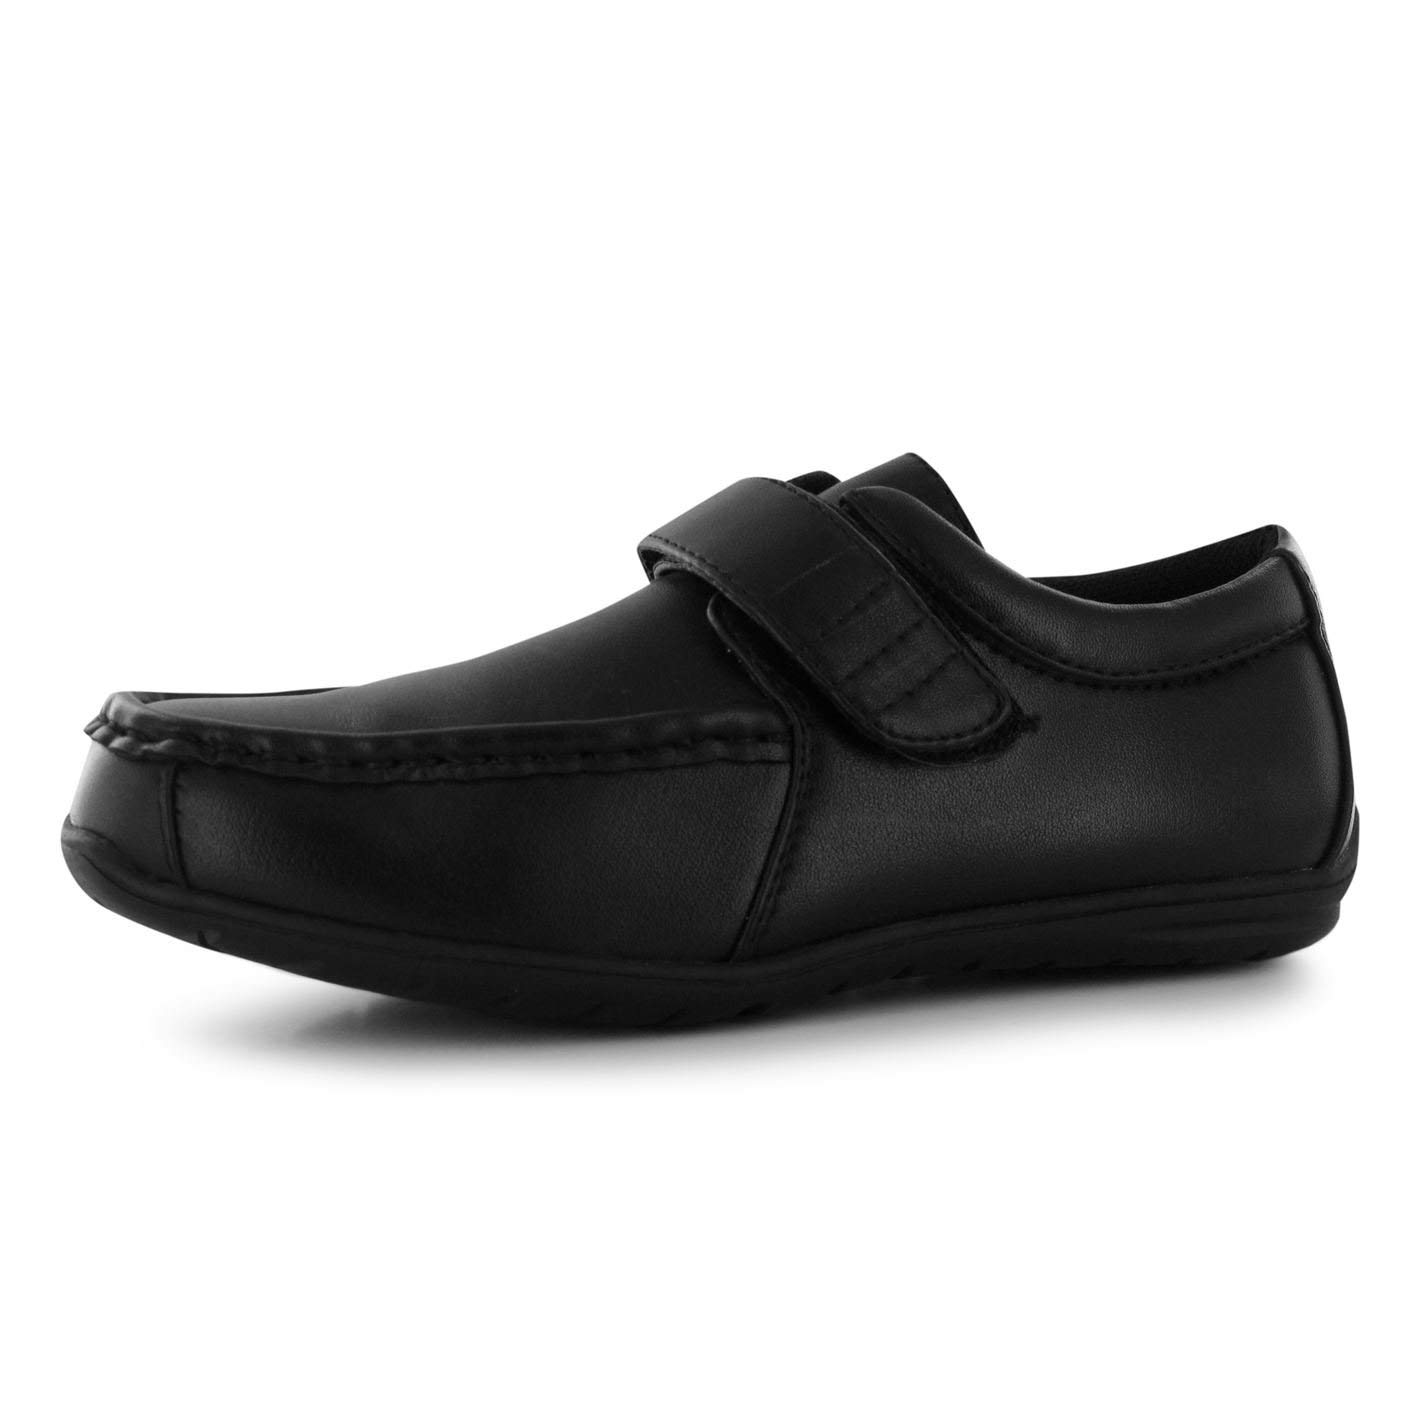 a90ca1a6449c Get Quotations · GIORGIO Kids Bexley Vel Casual Formal Cushioned Padded  Shoes